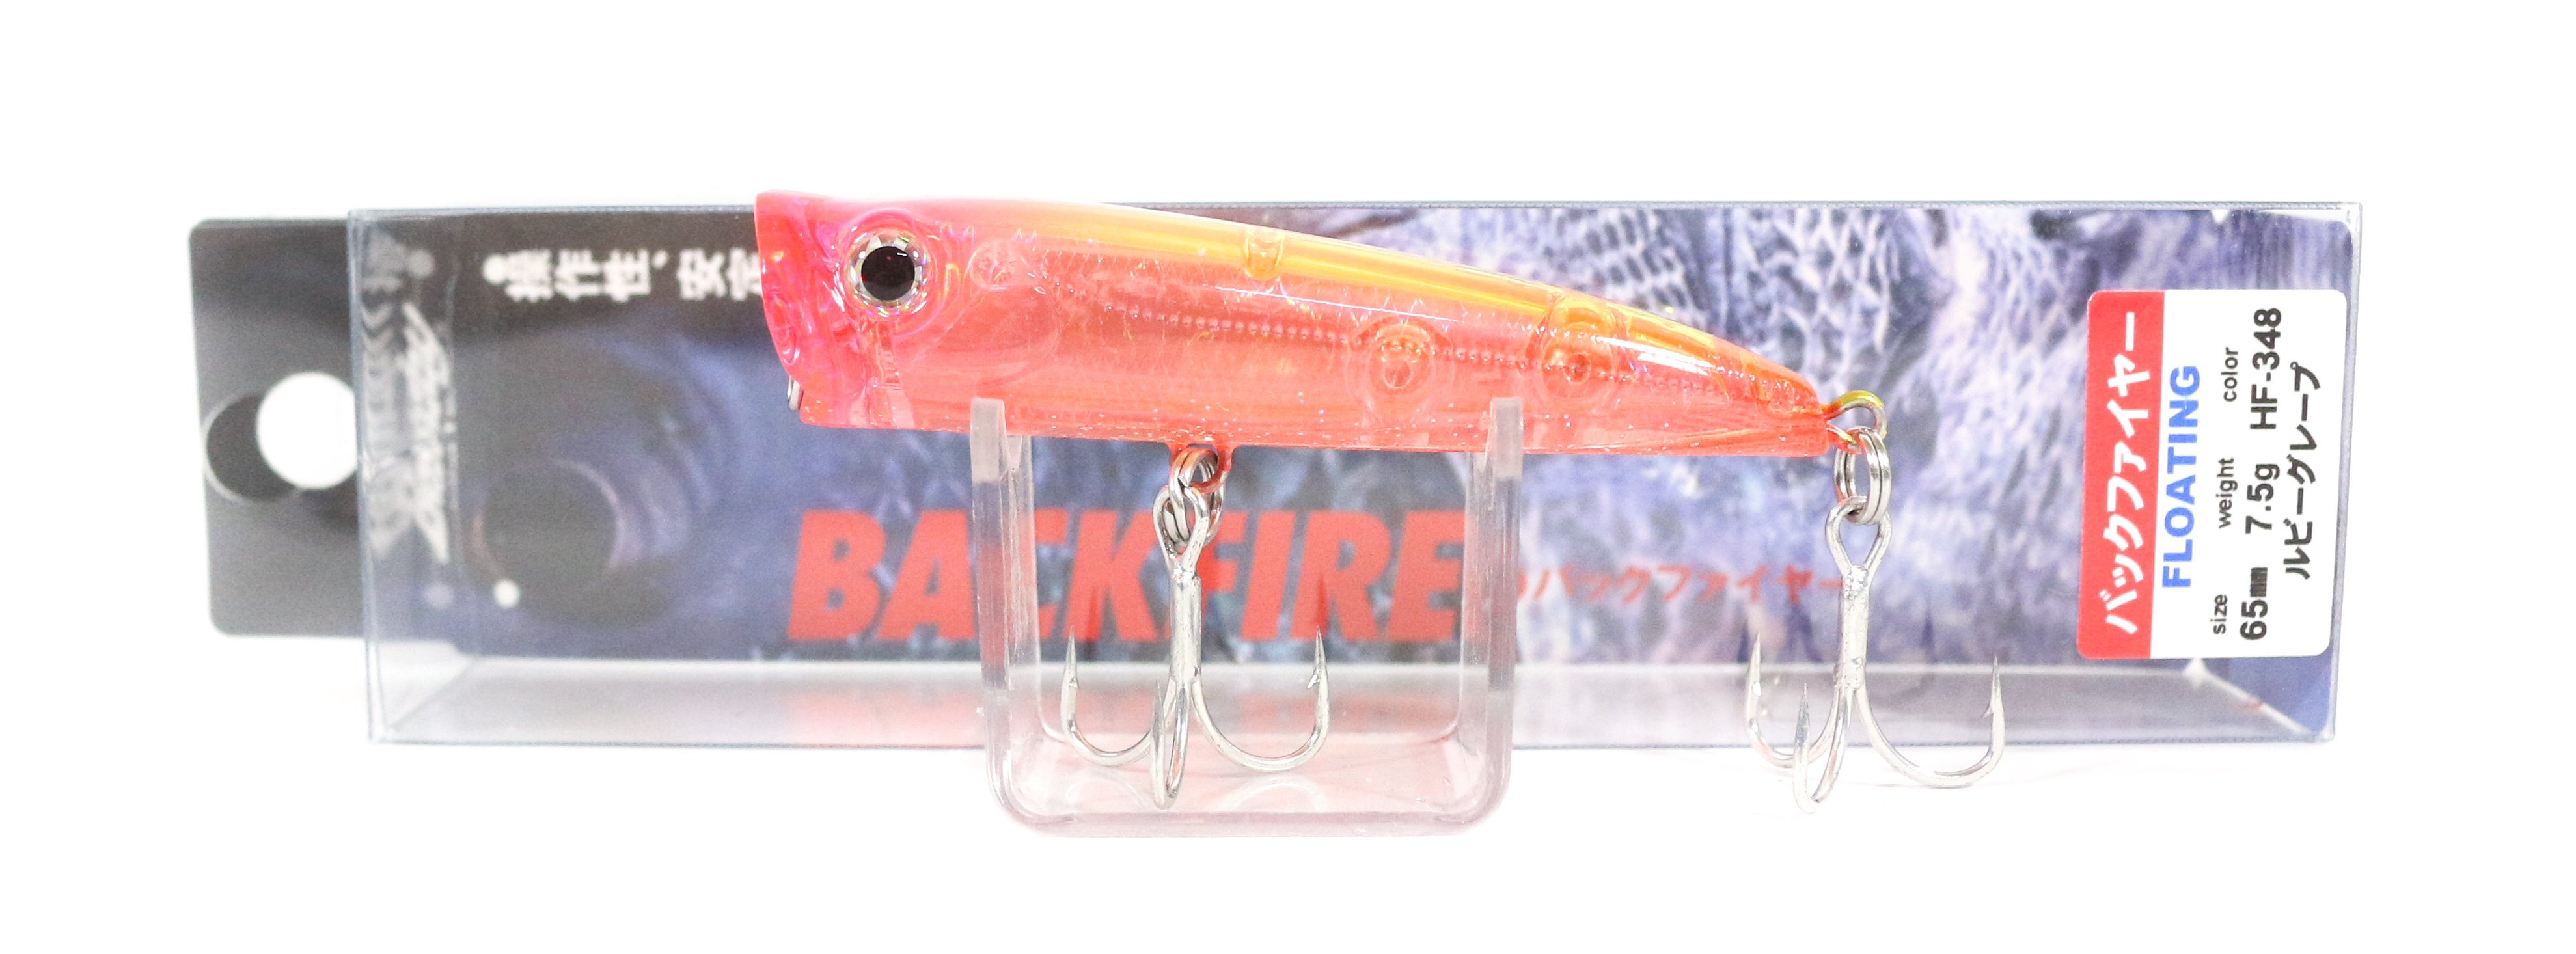 Bassday Backfire Popper Floating Lure HF-348 (9360)